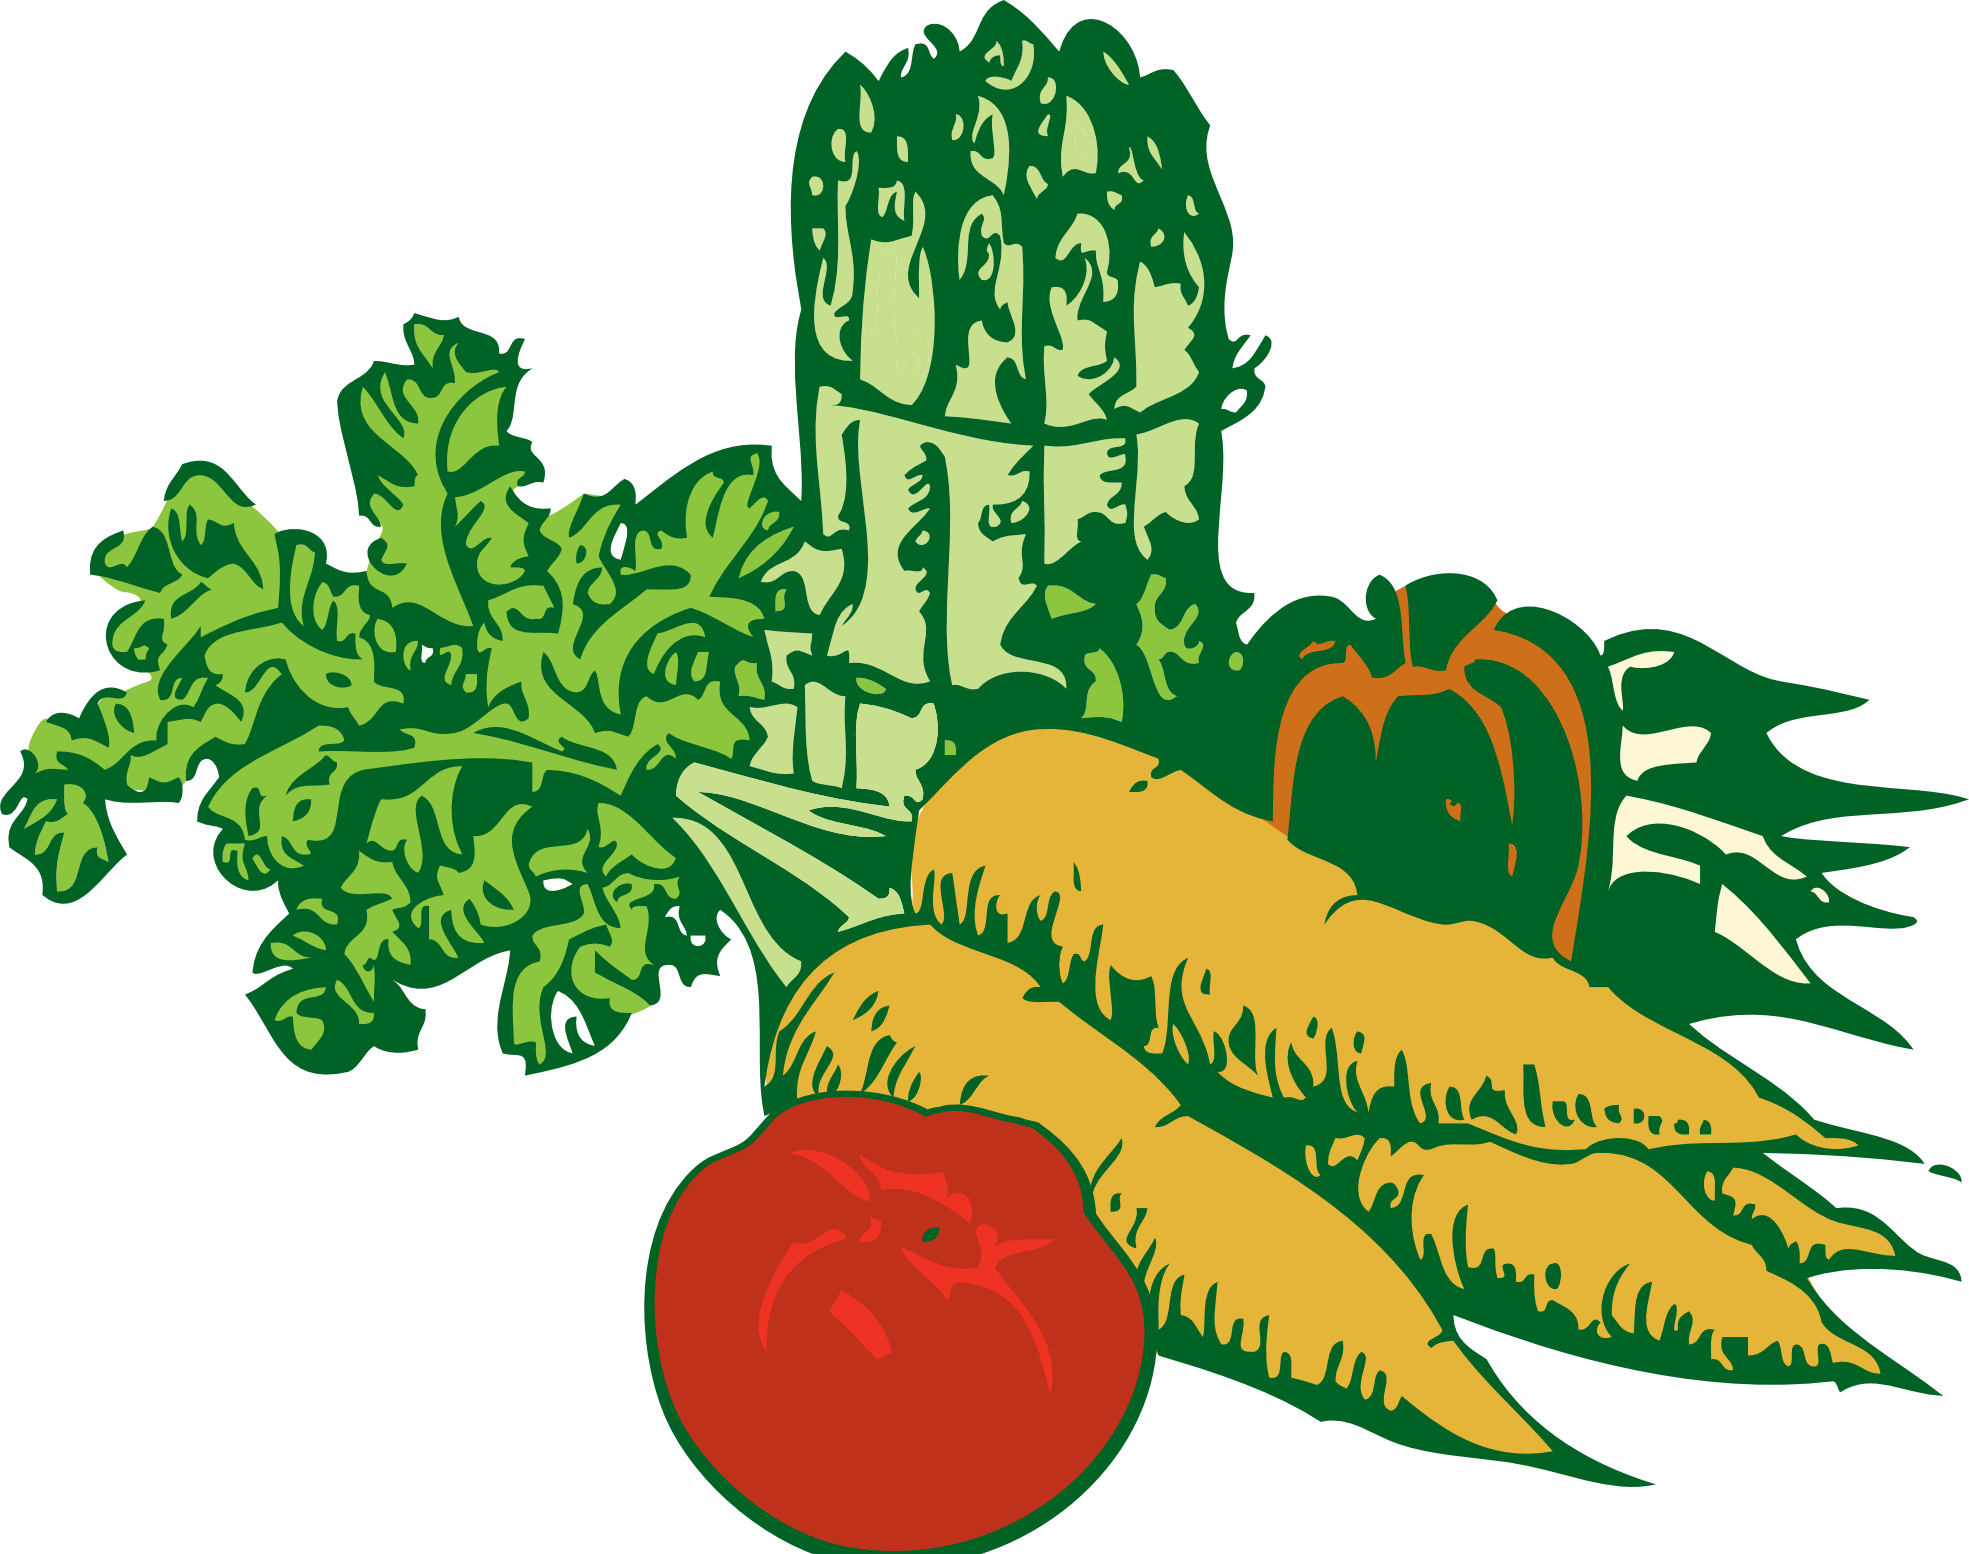 Vegetables panda free images. Heart clipart vegetable